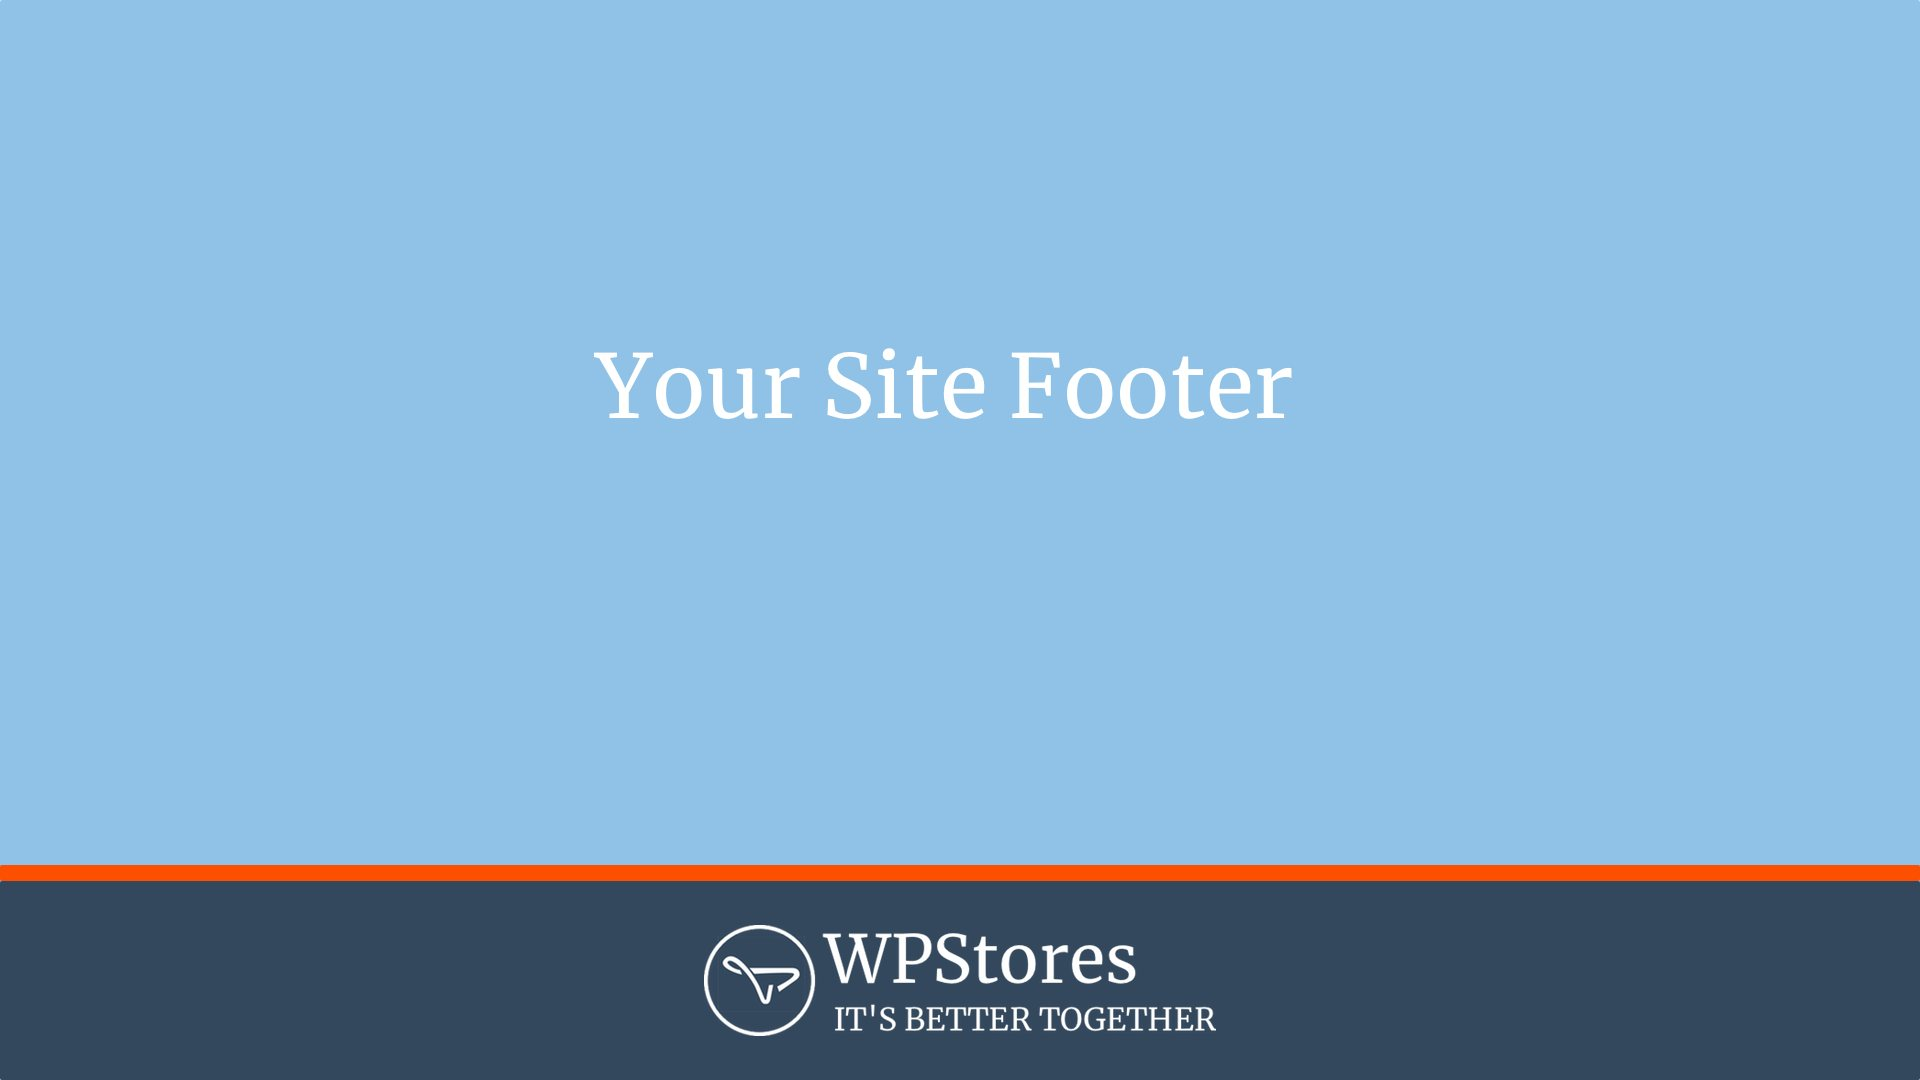 How To Design The Footer For Your Website